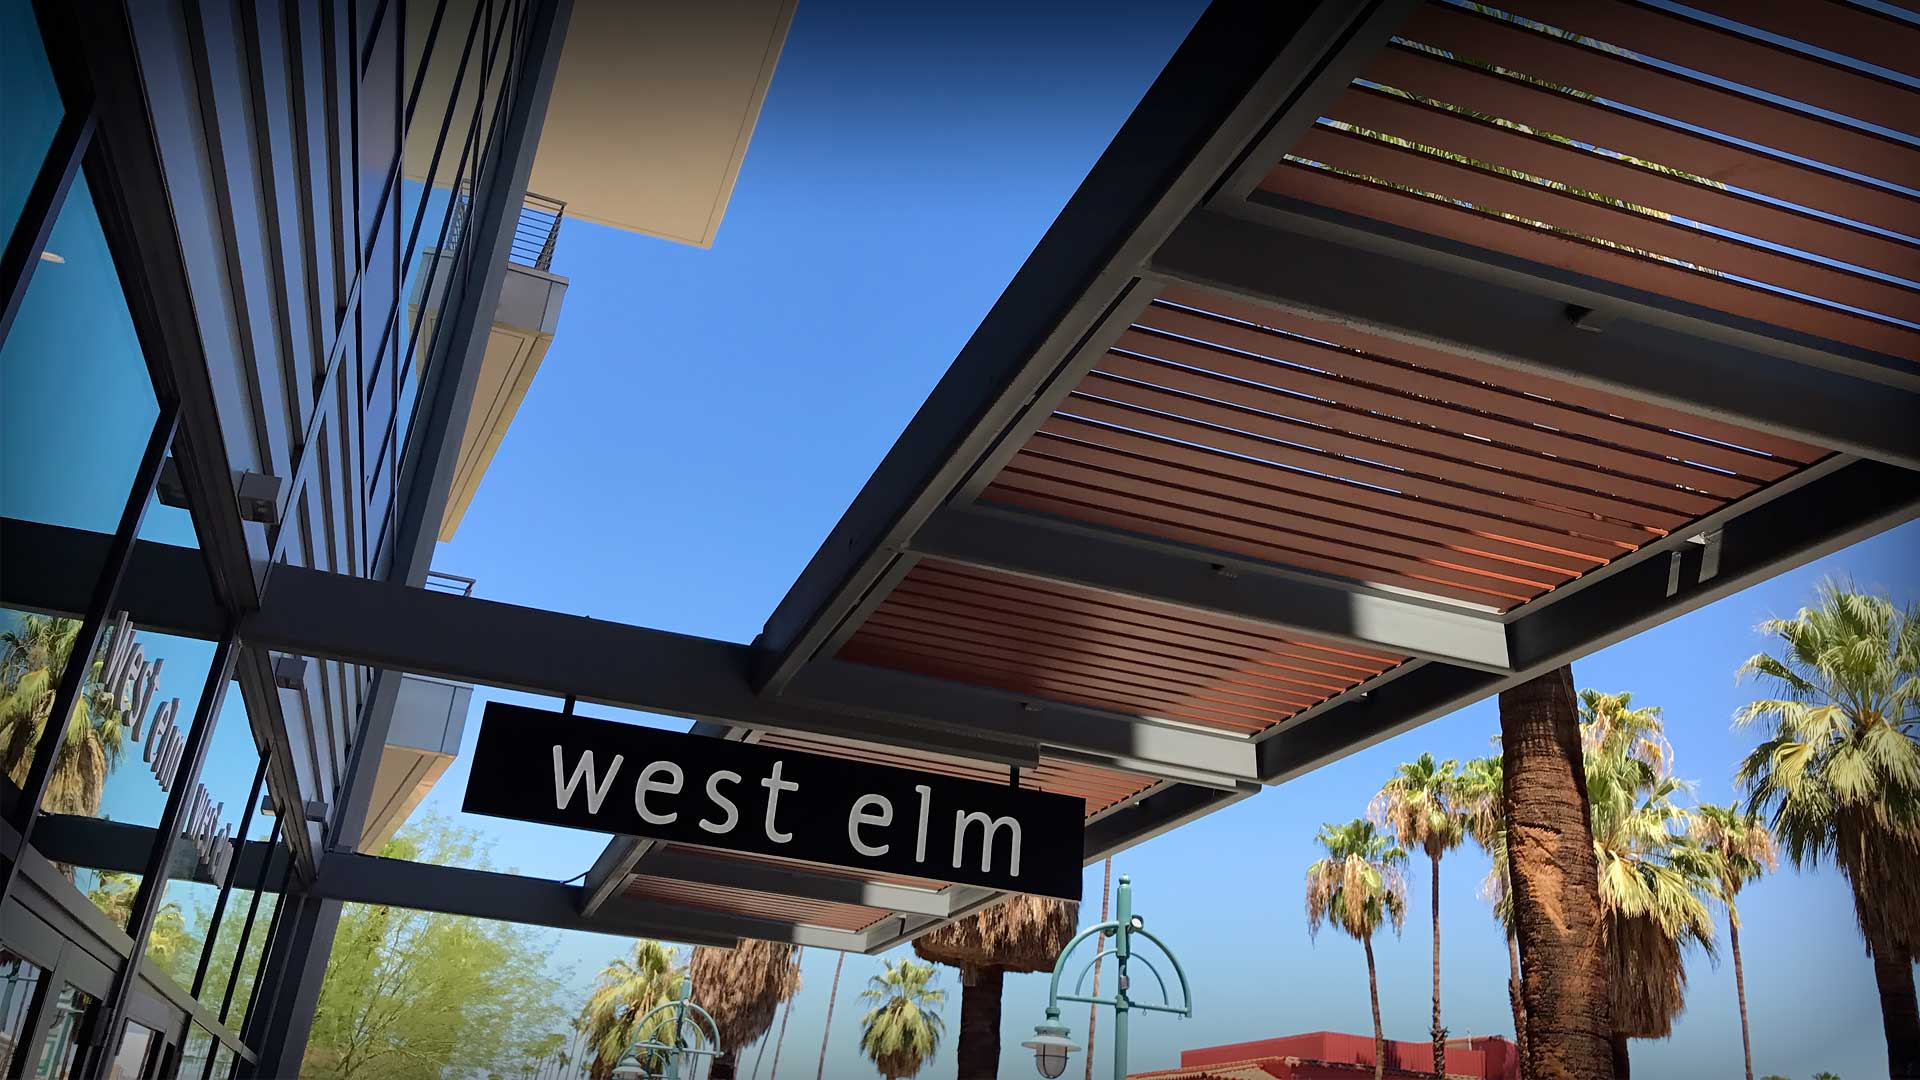 downtown-palm-springs-1920×1080-06a